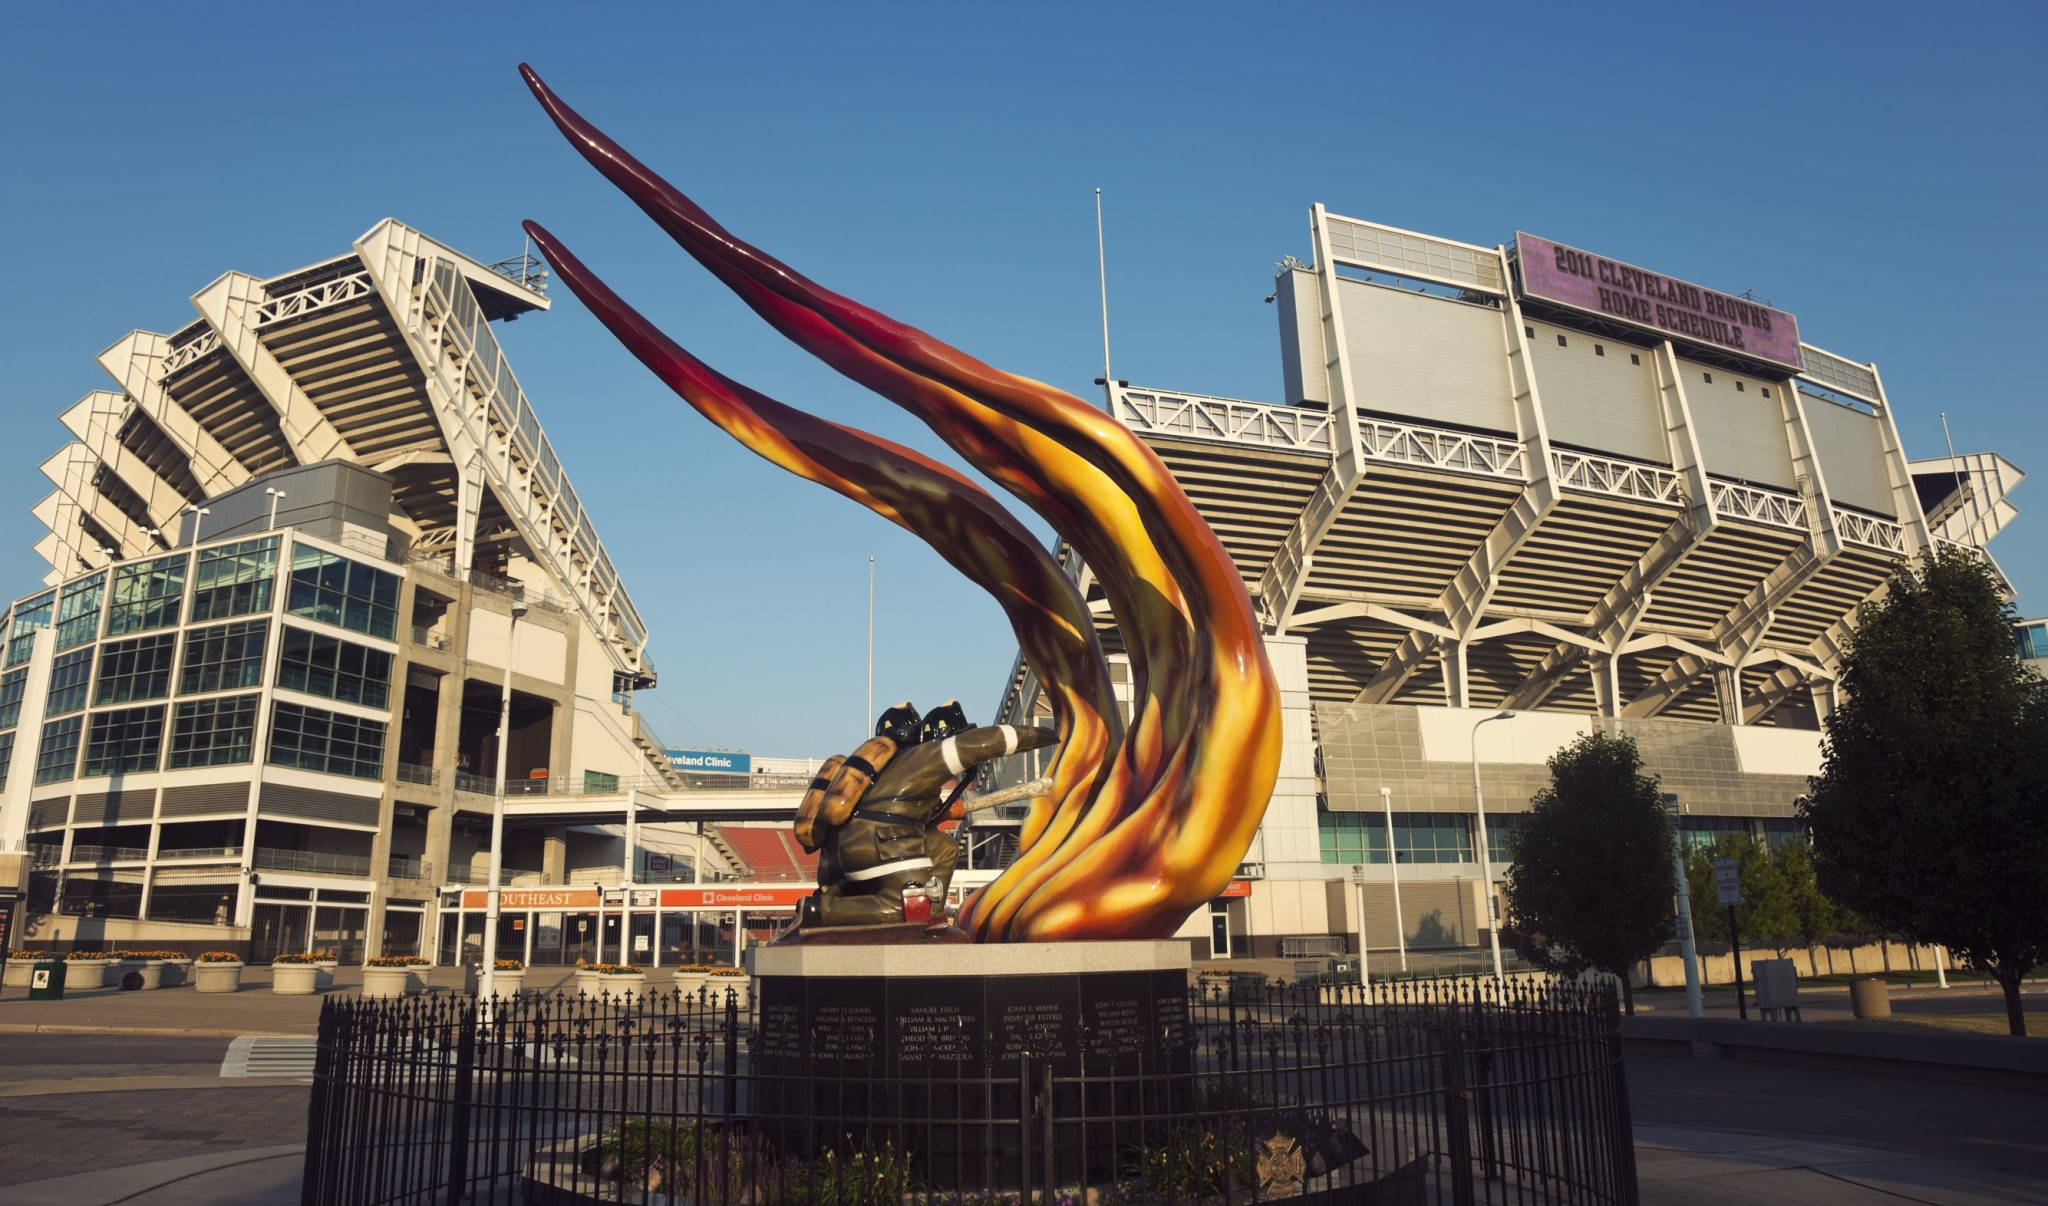 Cleveland Firefighters sculpture in front of the Browns stadium, Ohio